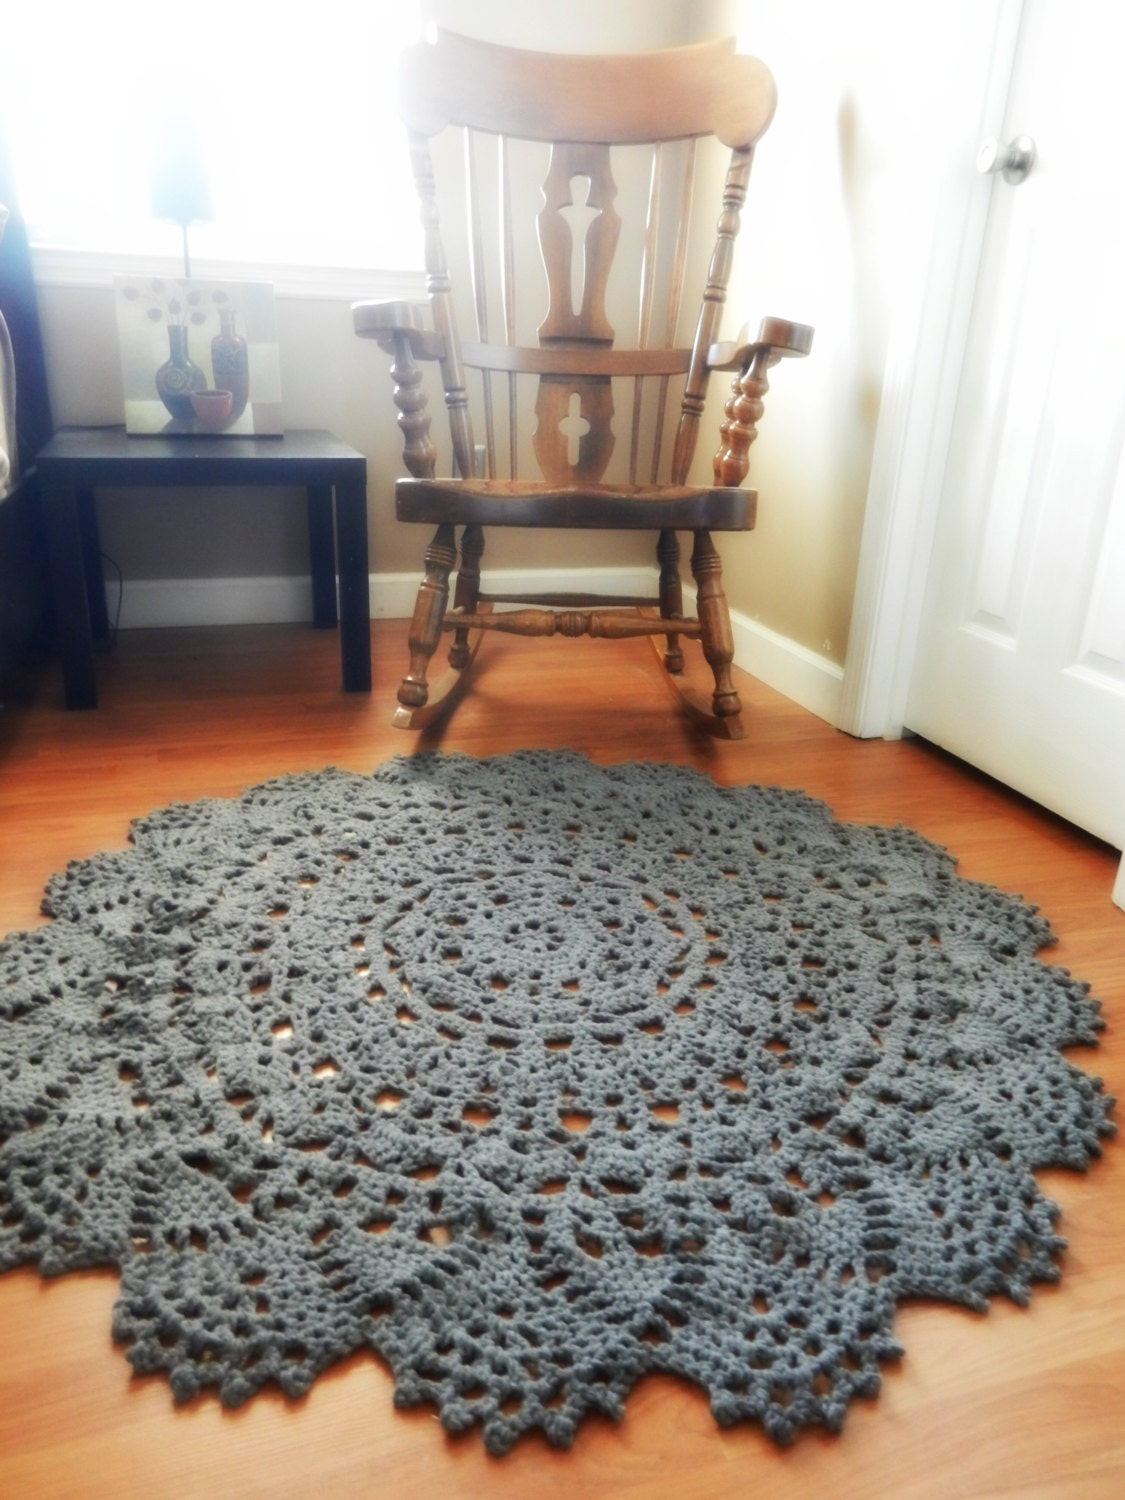 crochet doily rug charcoal grey pewter large round by evavillain. Black Bedroom Furniture Sets. Home Design Ideas